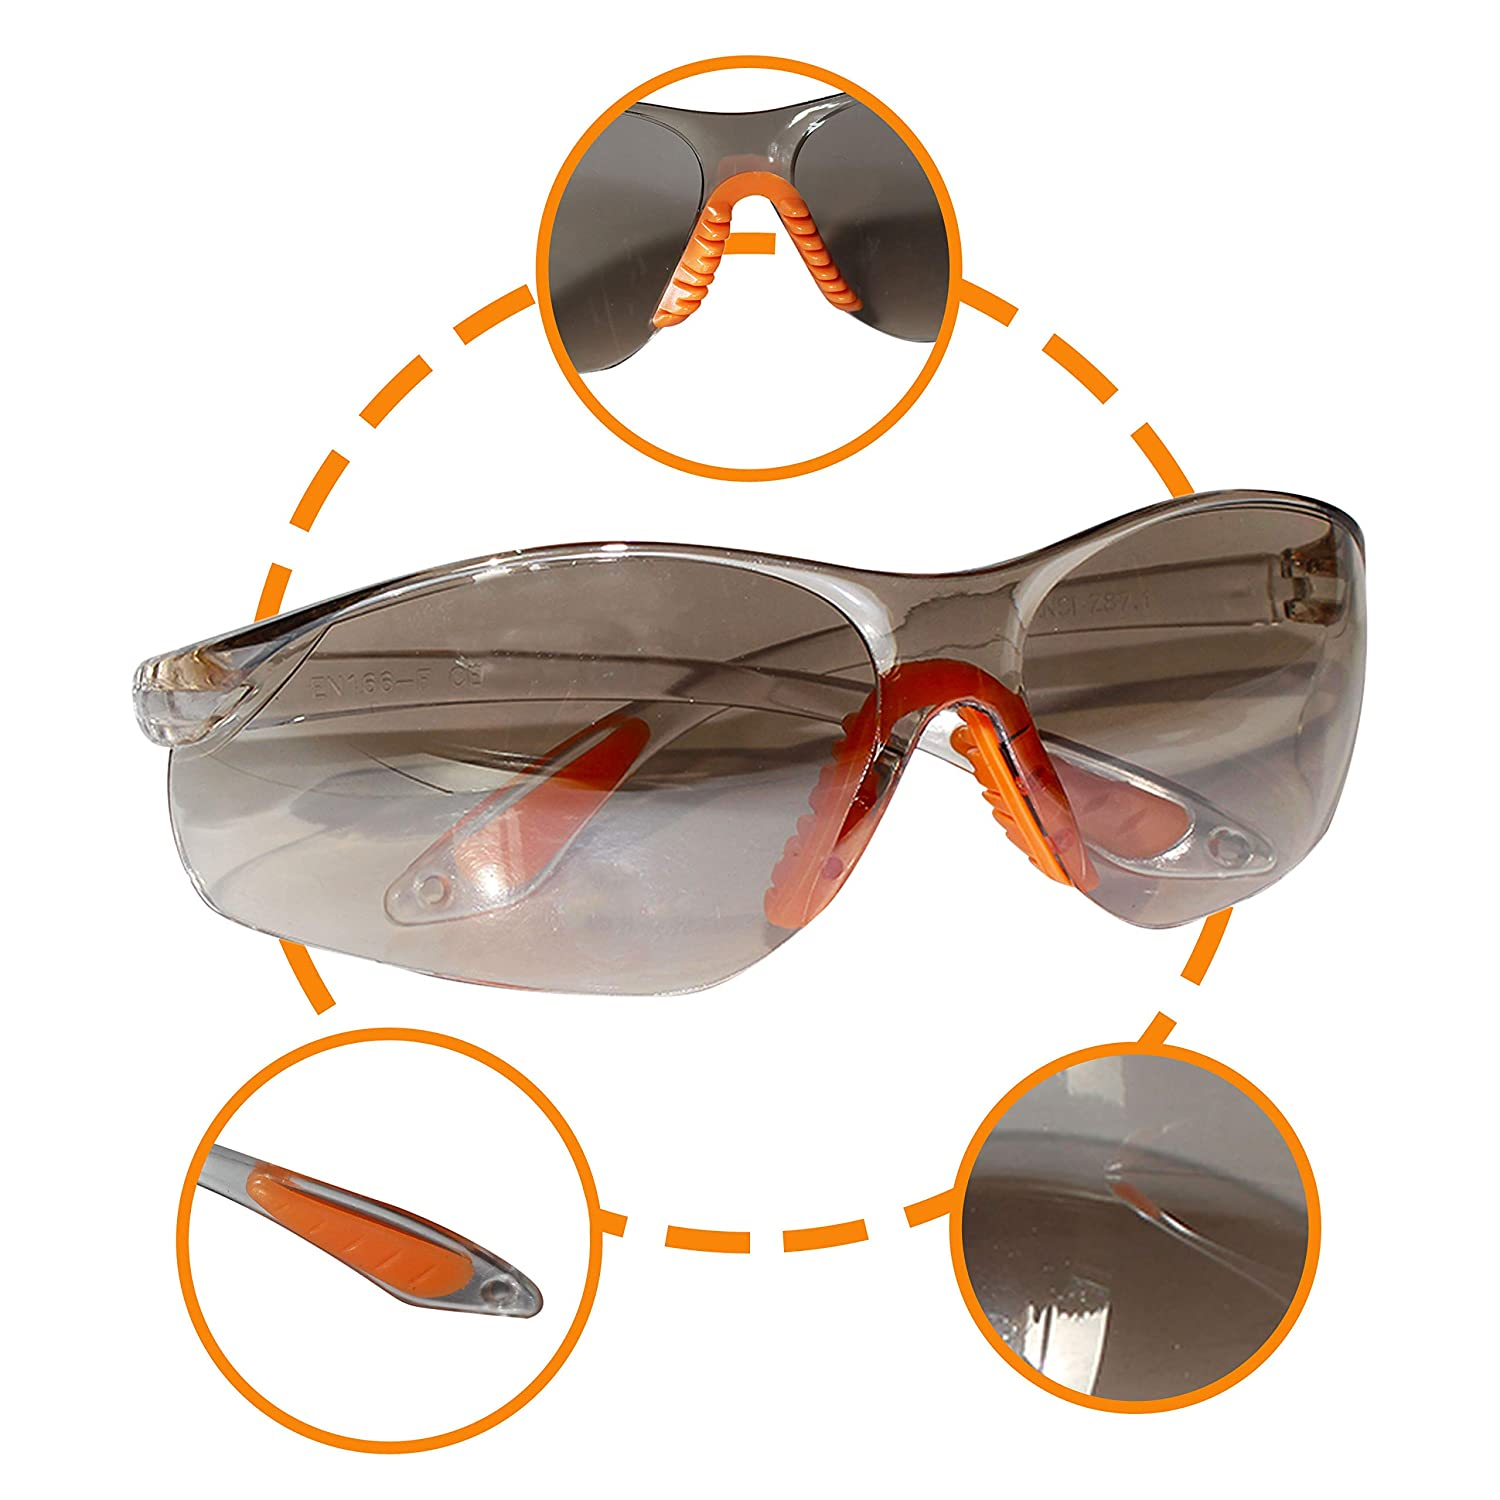 24 Pack Protective Glasses Safety Glasses Safety Goggles Eyewear Eyeglasses for Eye Protection with Clear Plastic Lenses and Featuring Rubber Nose and Ear Grips for Comfortable Fit